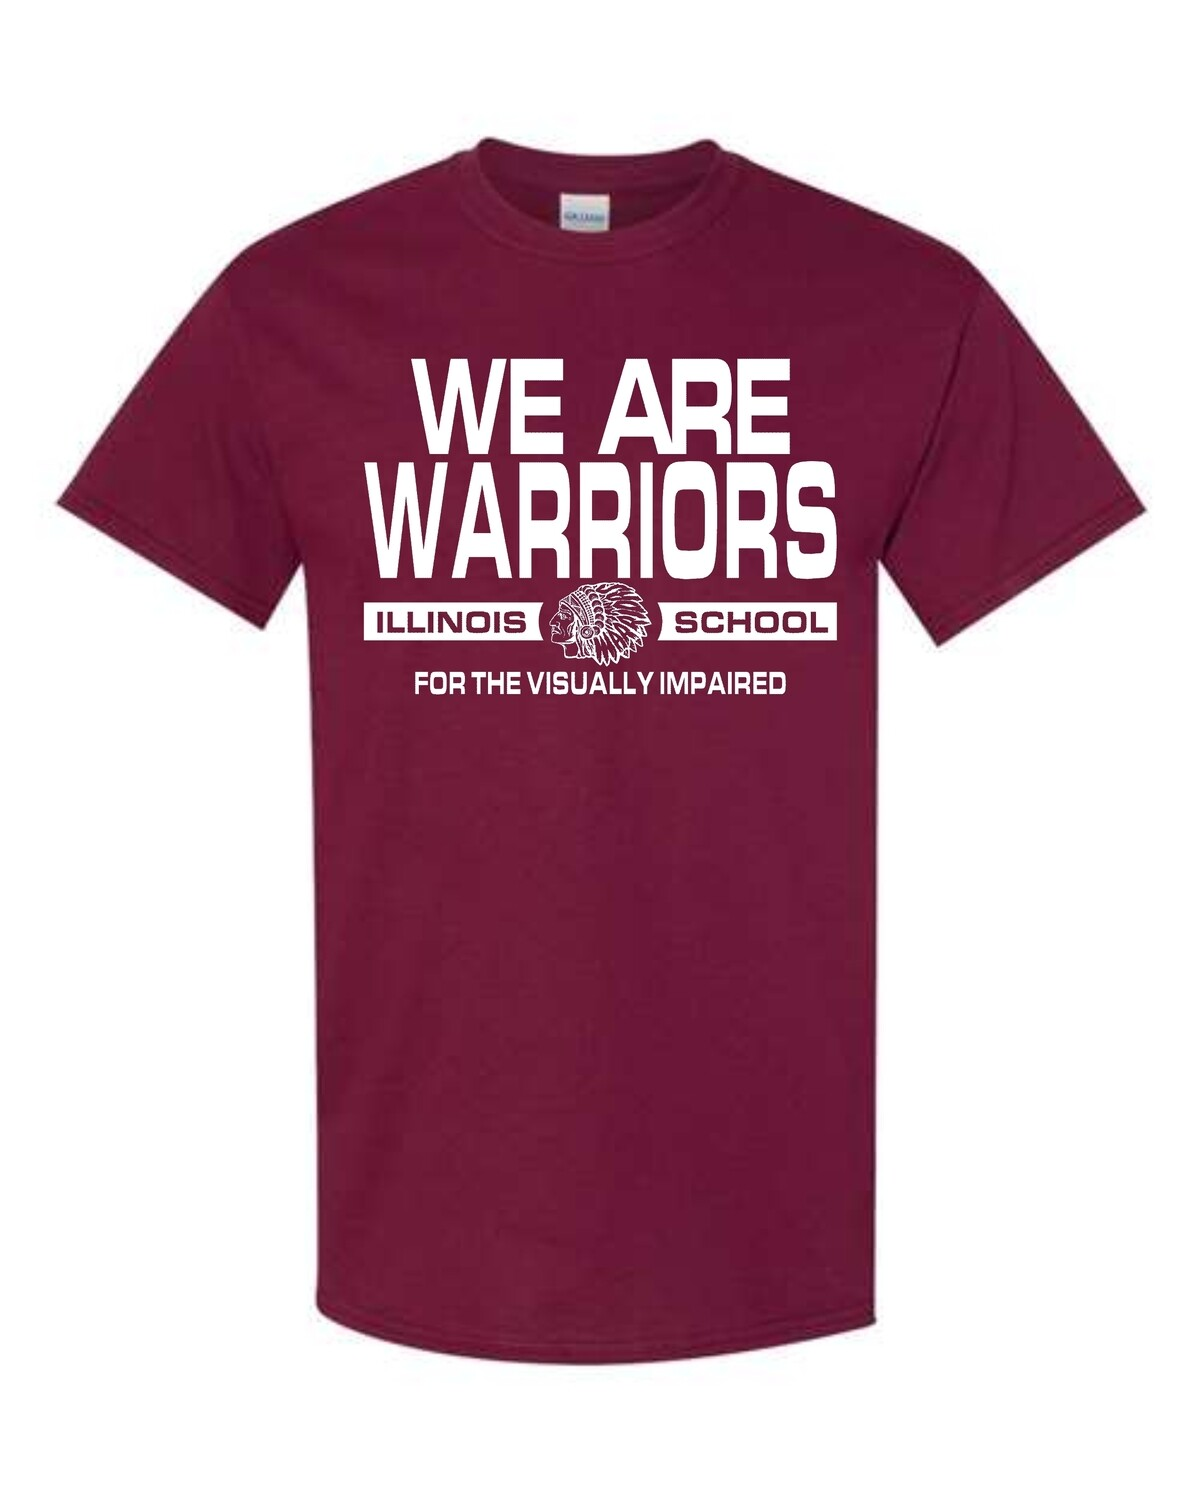 WARRIORS-WE ARE-5000